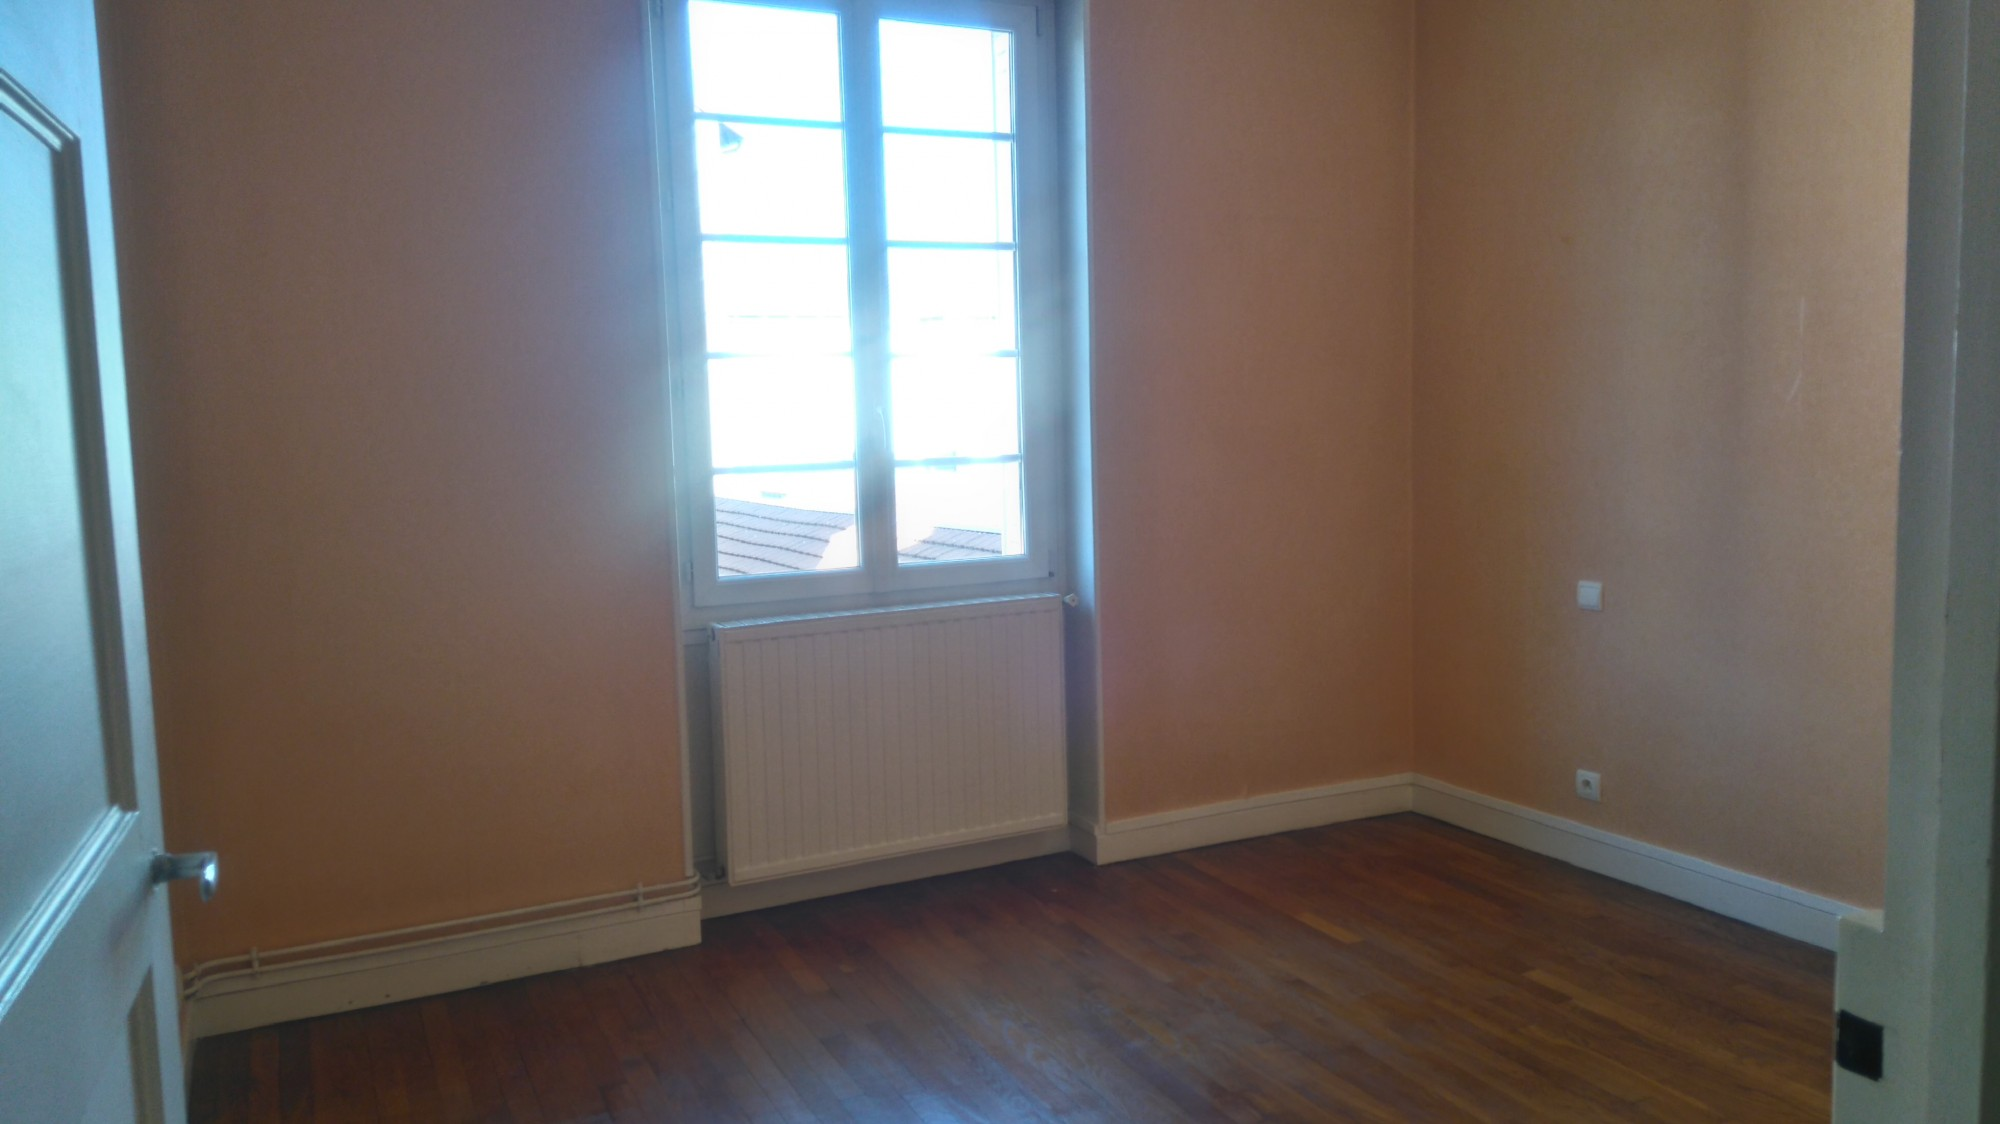 Location appartement t3 renove plein centre valence for Louer appartement agence immobiliere